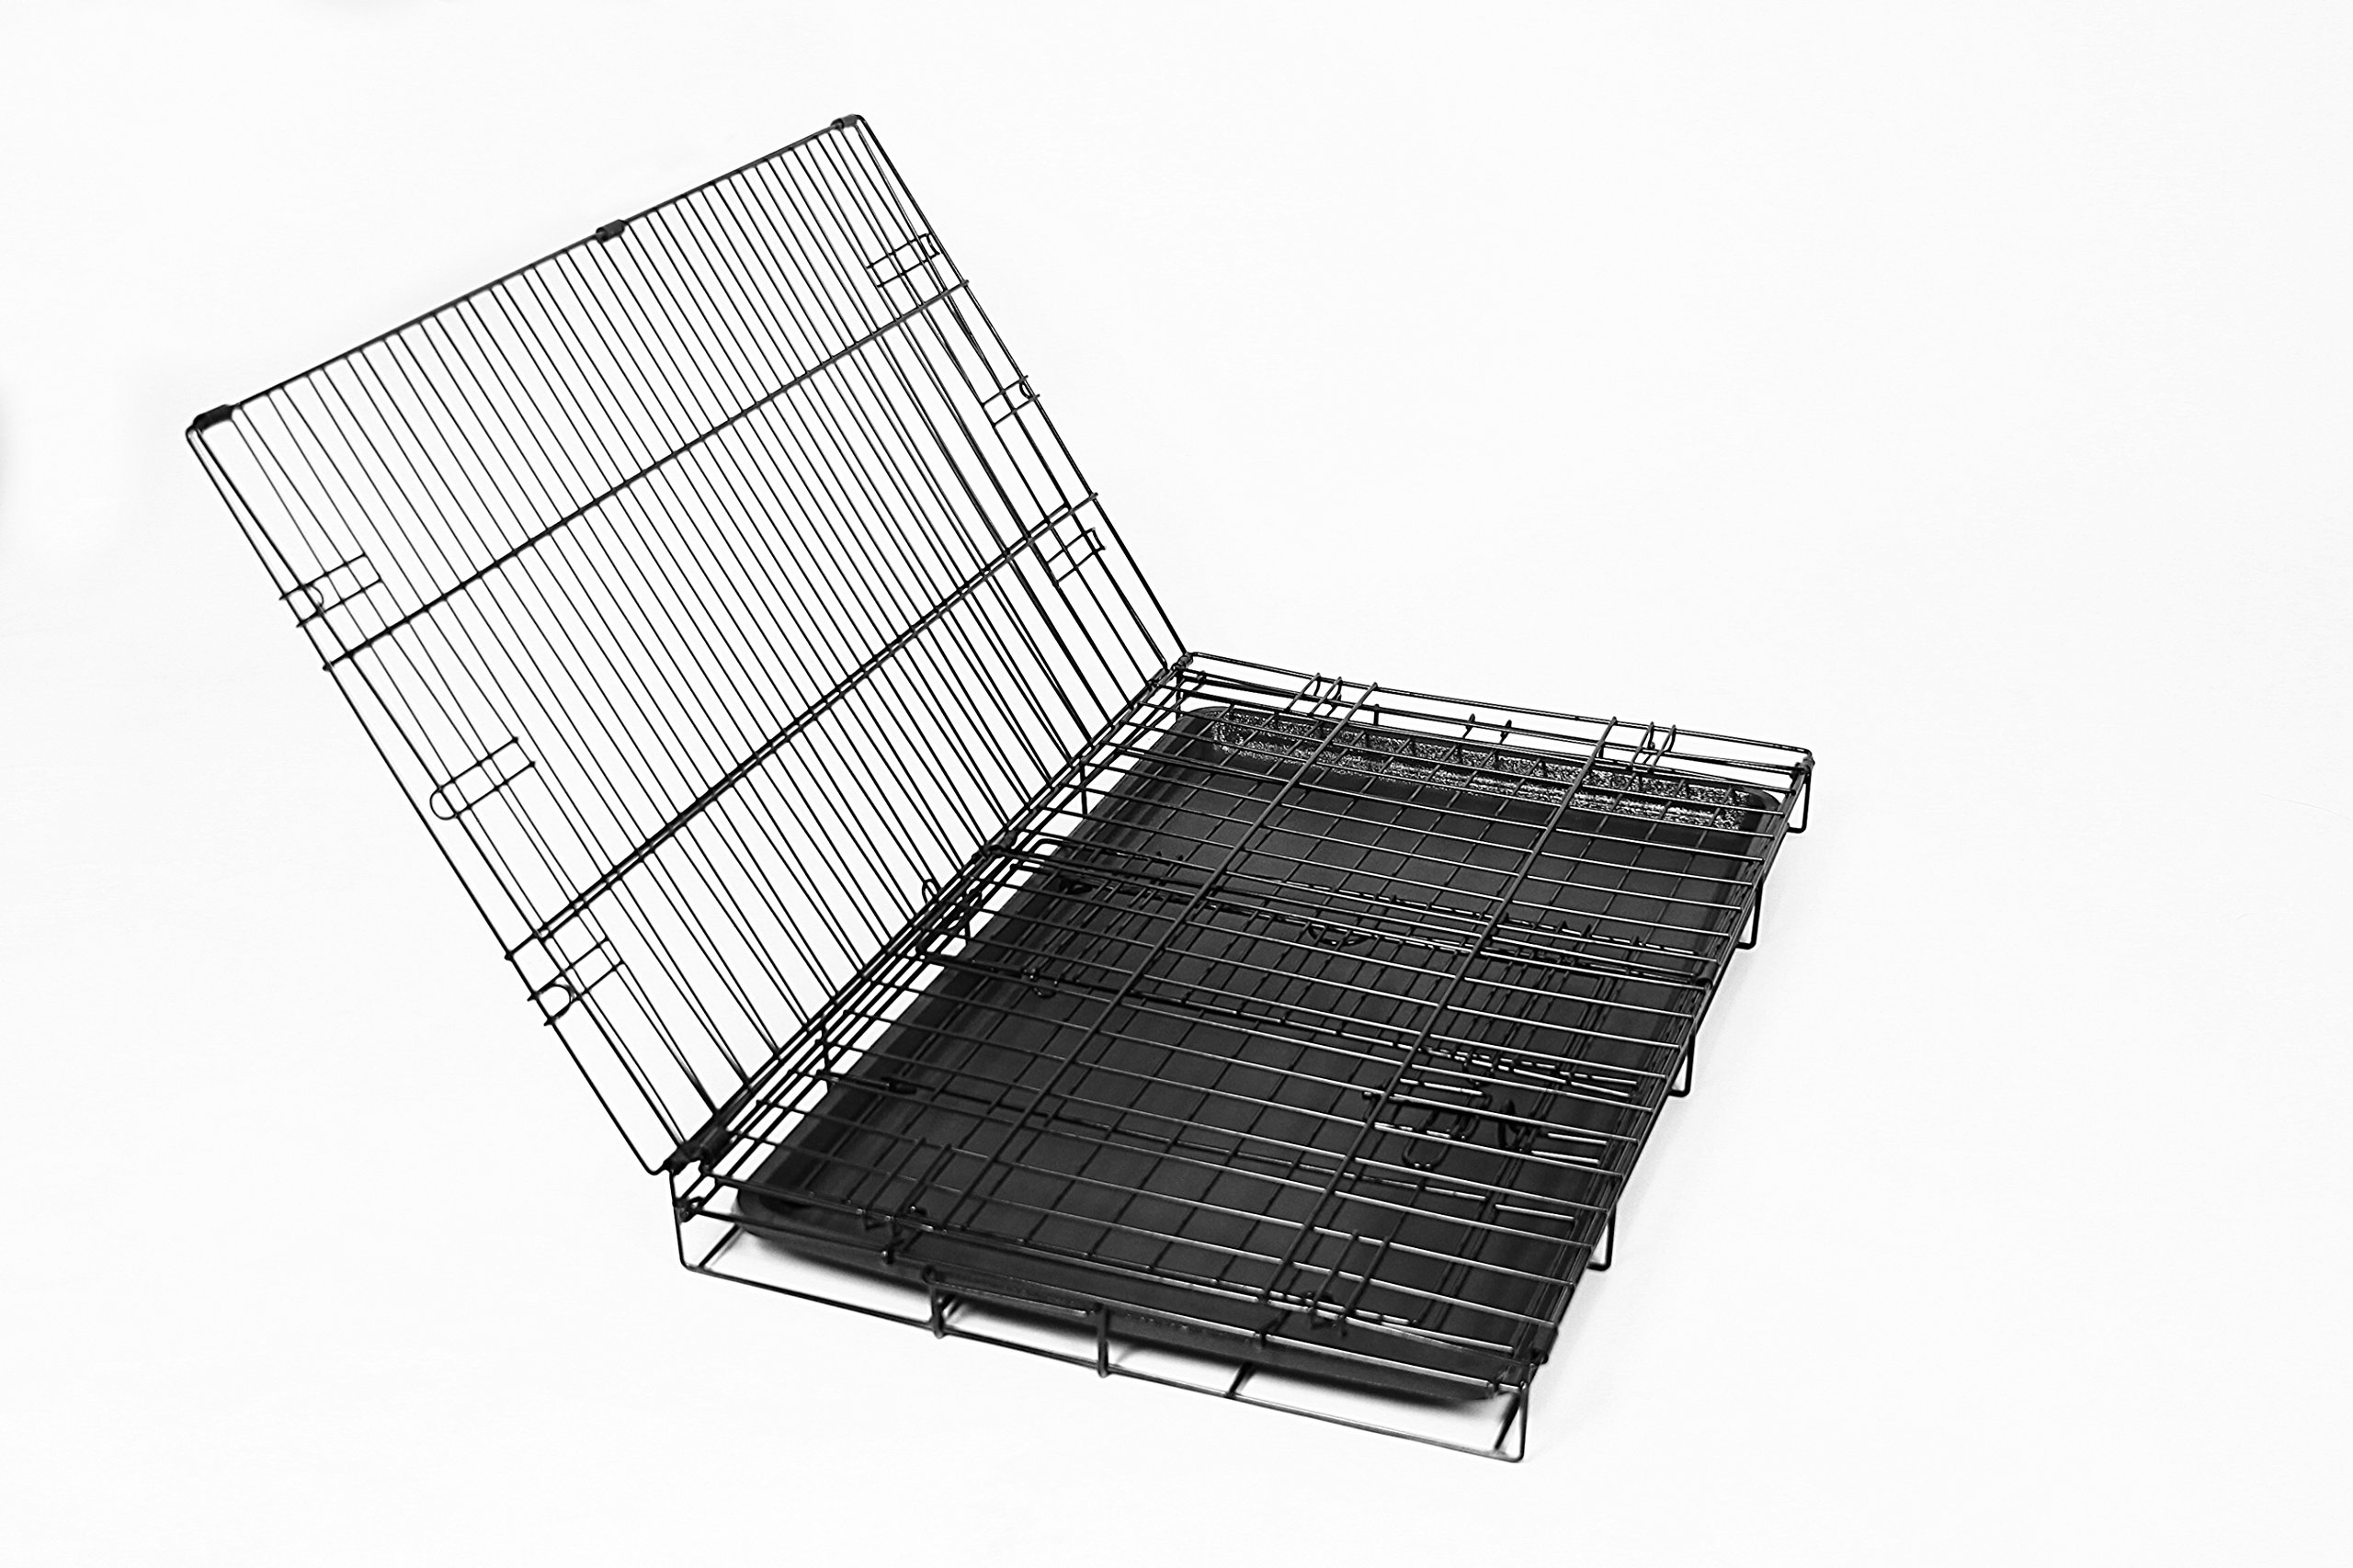 Carlson Pet Products Secure and Foldable Single Door Metal Dog Crate, Medium by Carlson Pet Products (Image #3)